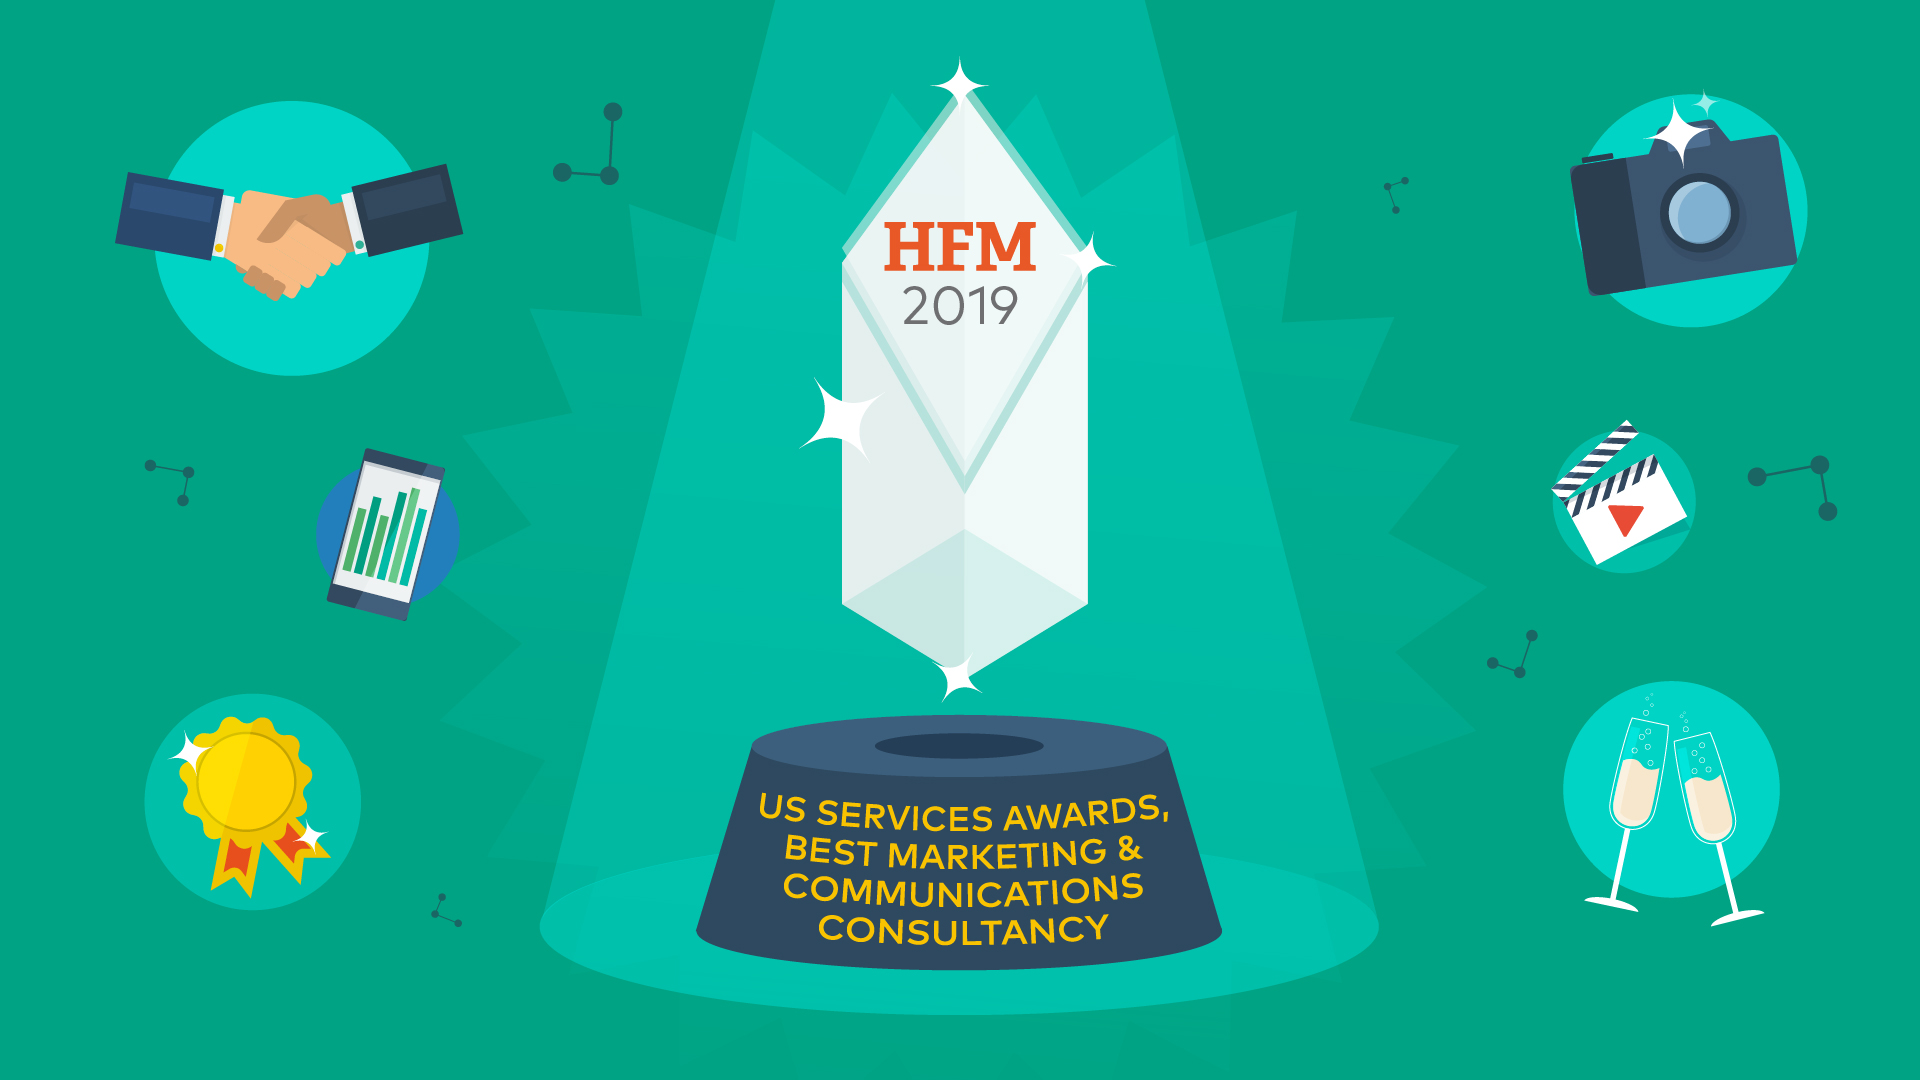 Best Marketing and Communications Consultancy at the HFM US Hedge Fund Services Awards 2019